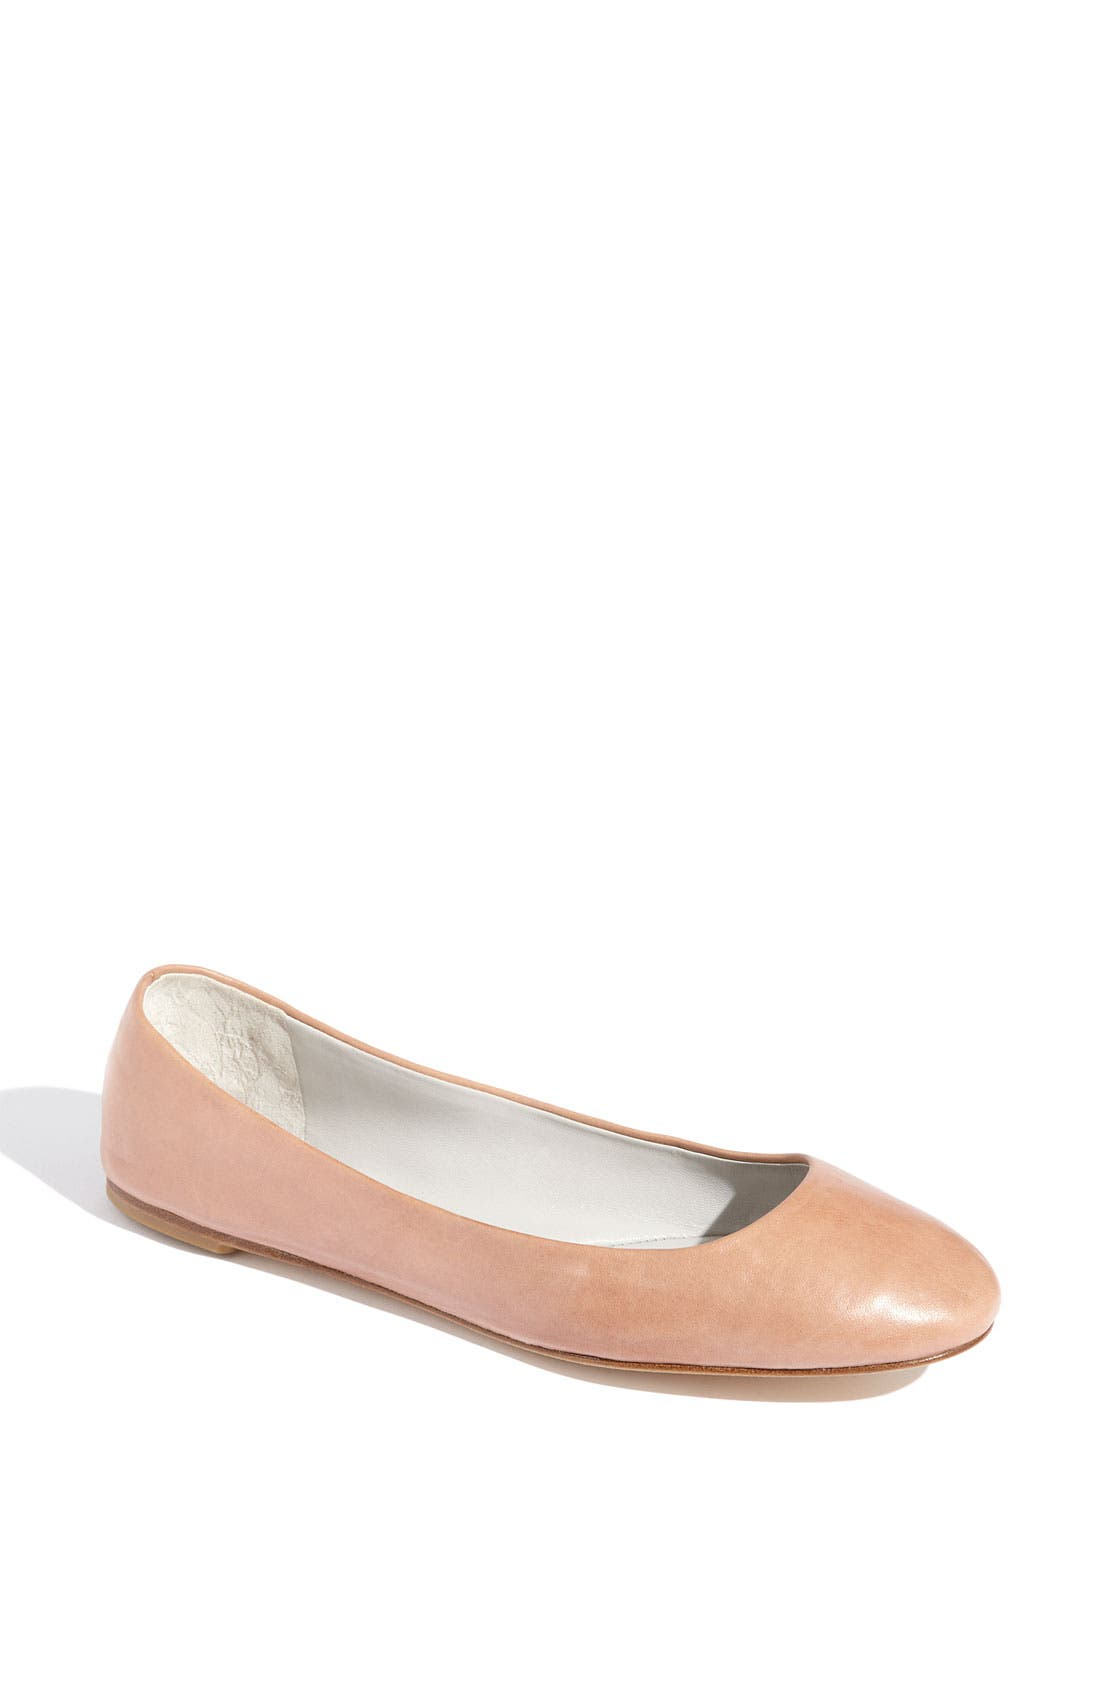 Alternate Image 1 Selected - Vera Wang Footwear 'Lara' Flat